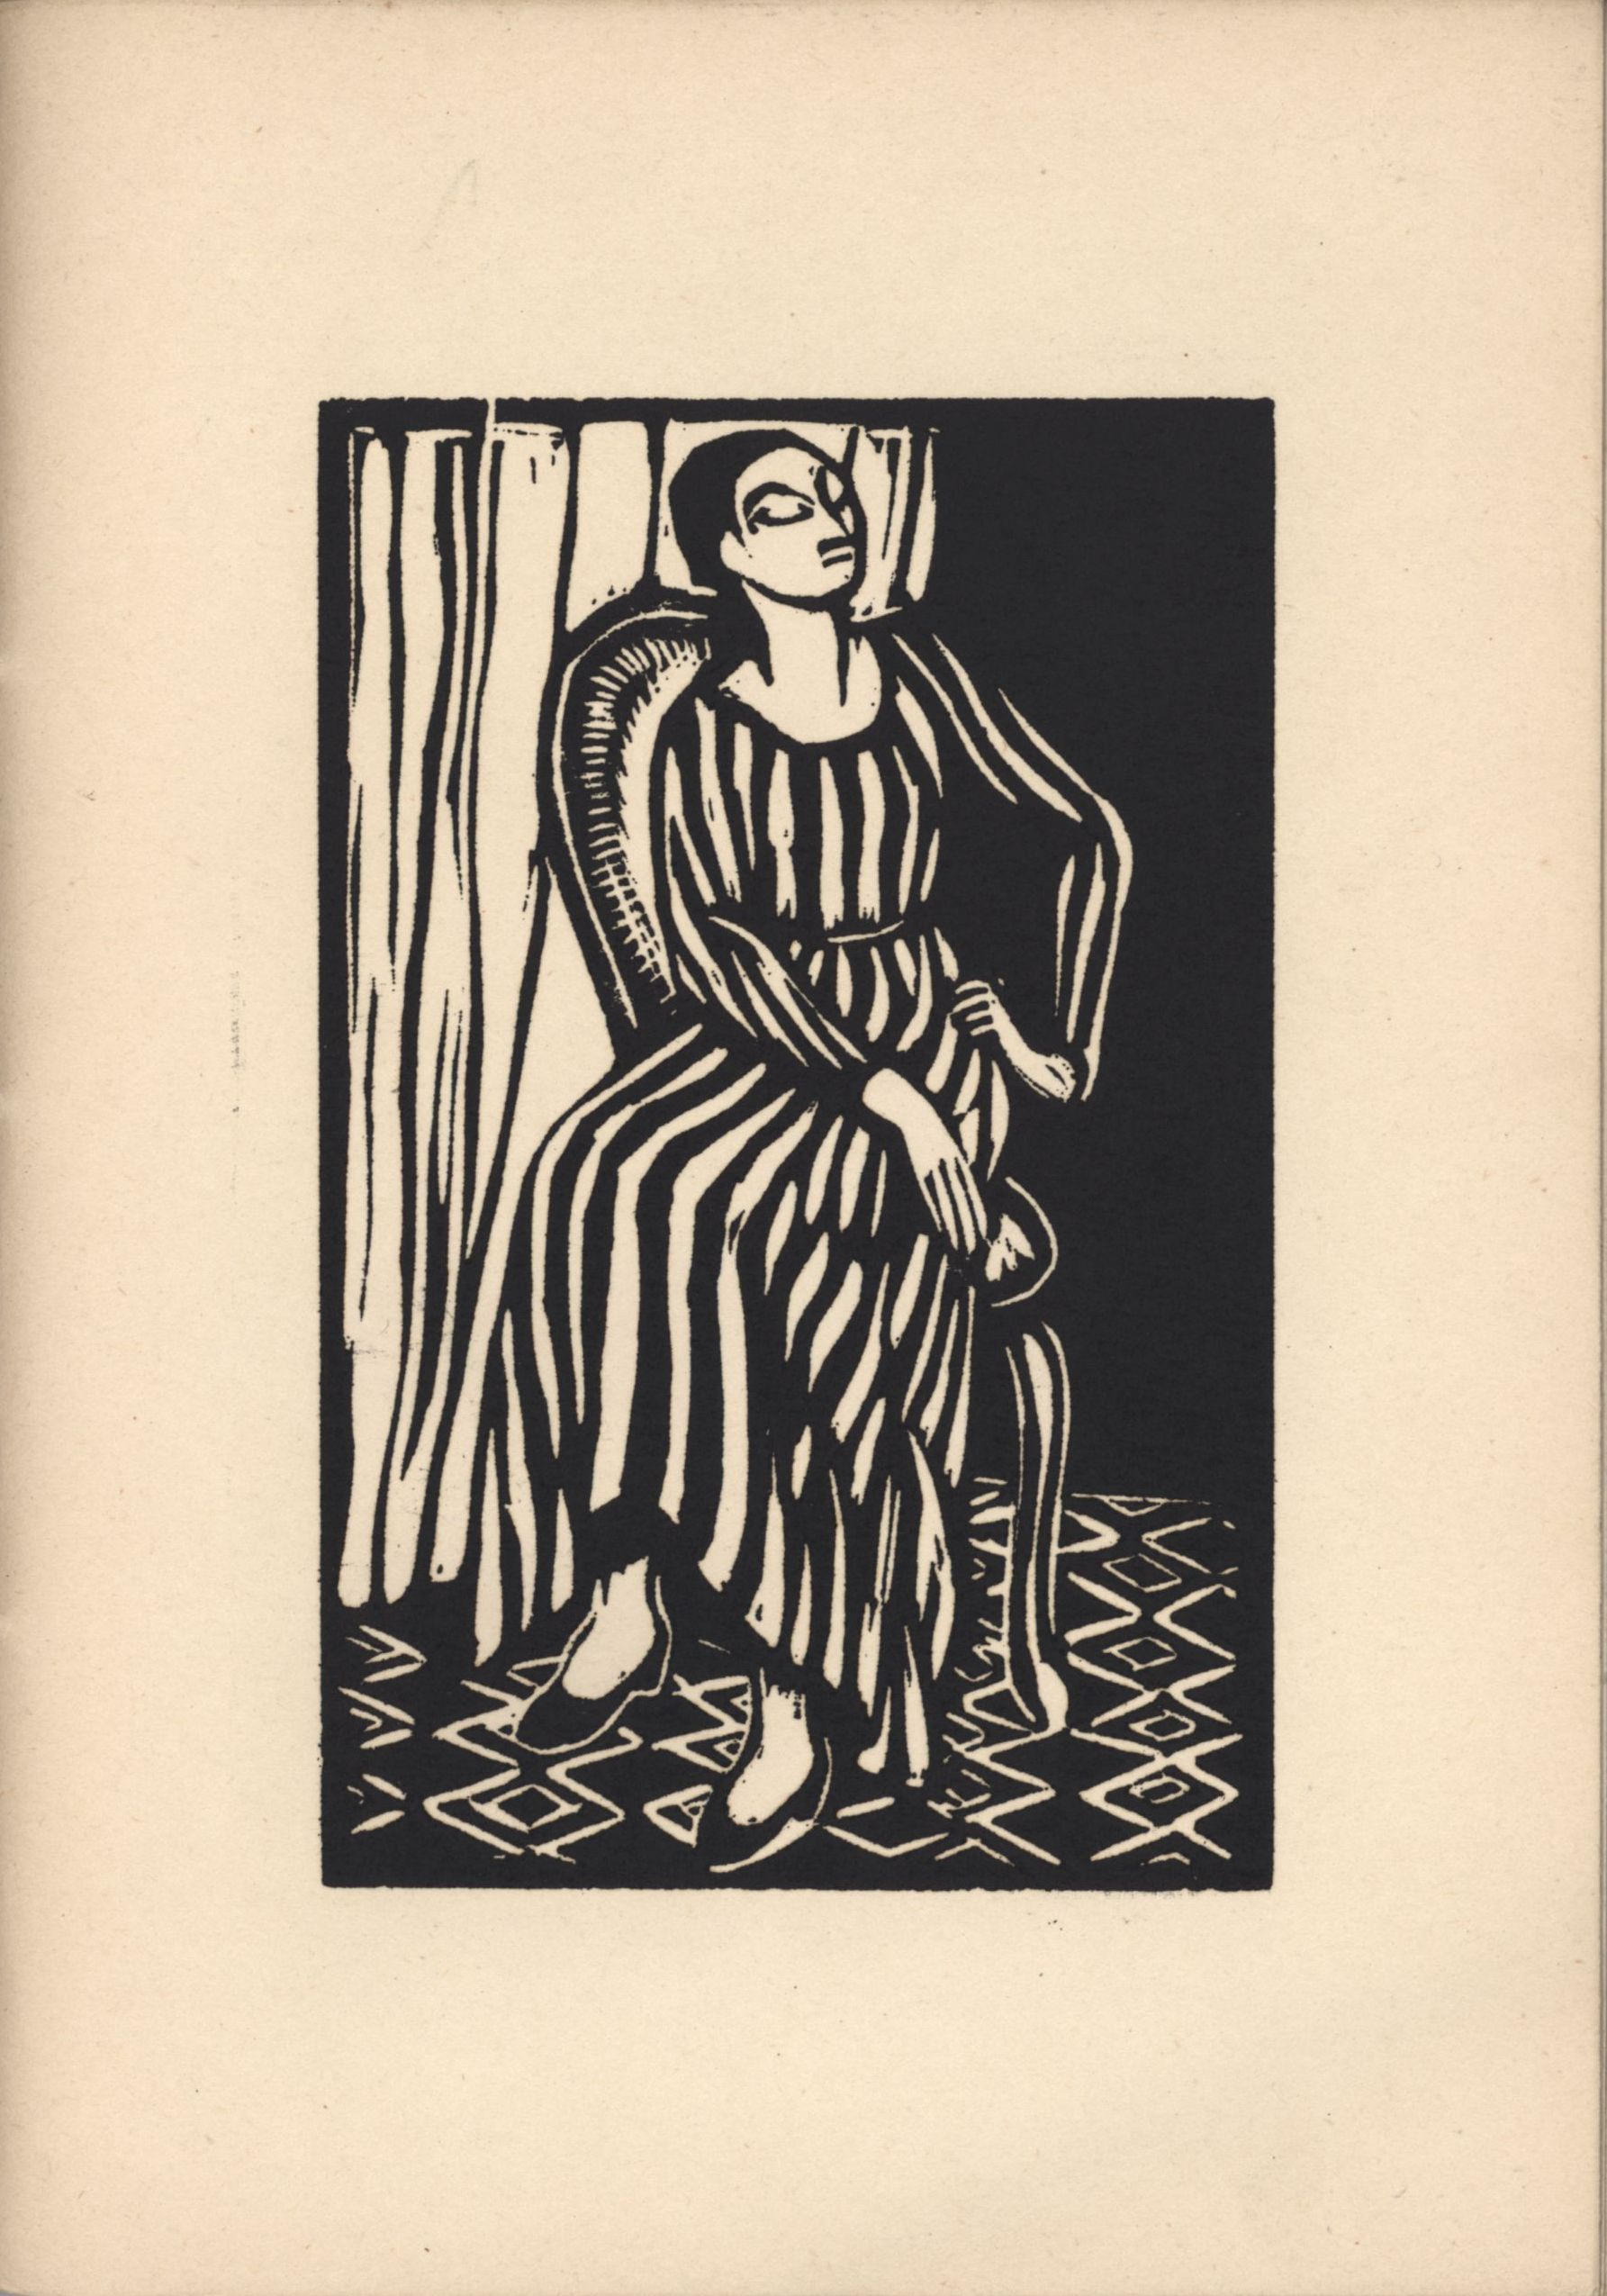 Second woodcut from Roger Fry's 'Twelve Original Woodcuts'.